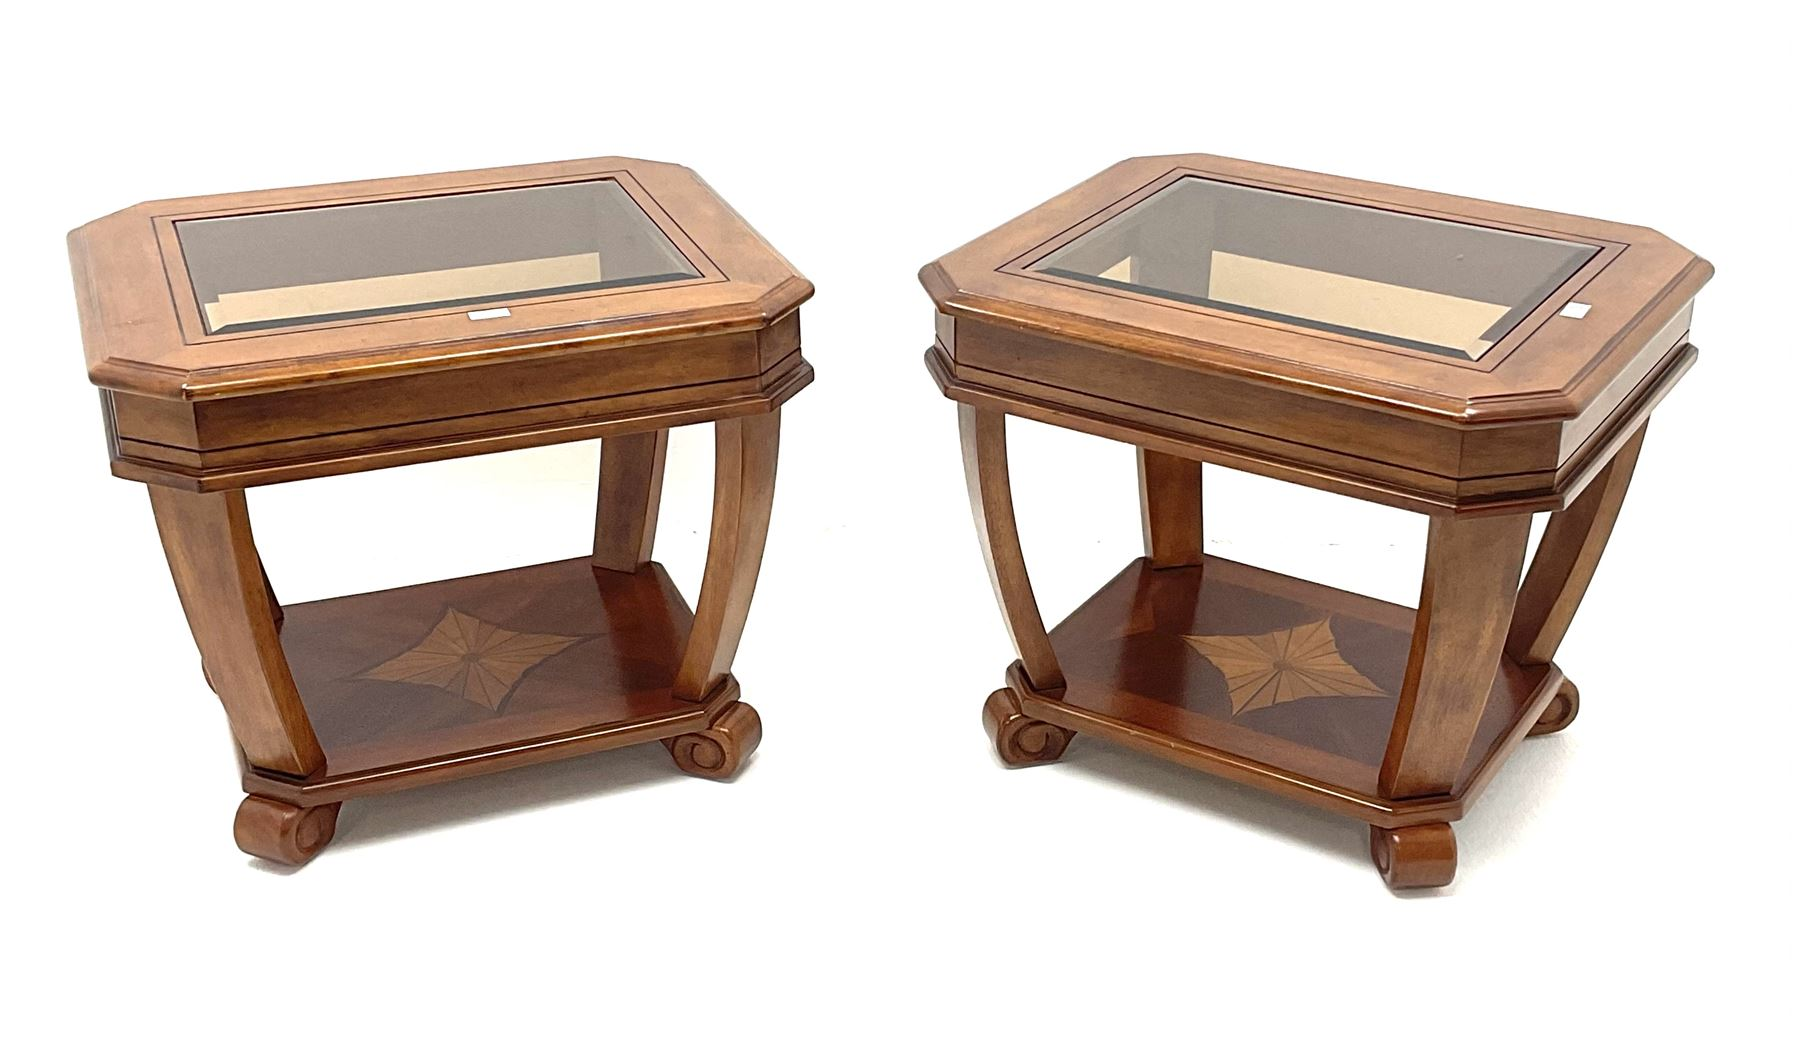 Pair walnut rectangular two tier lamp tables with inset glass tops